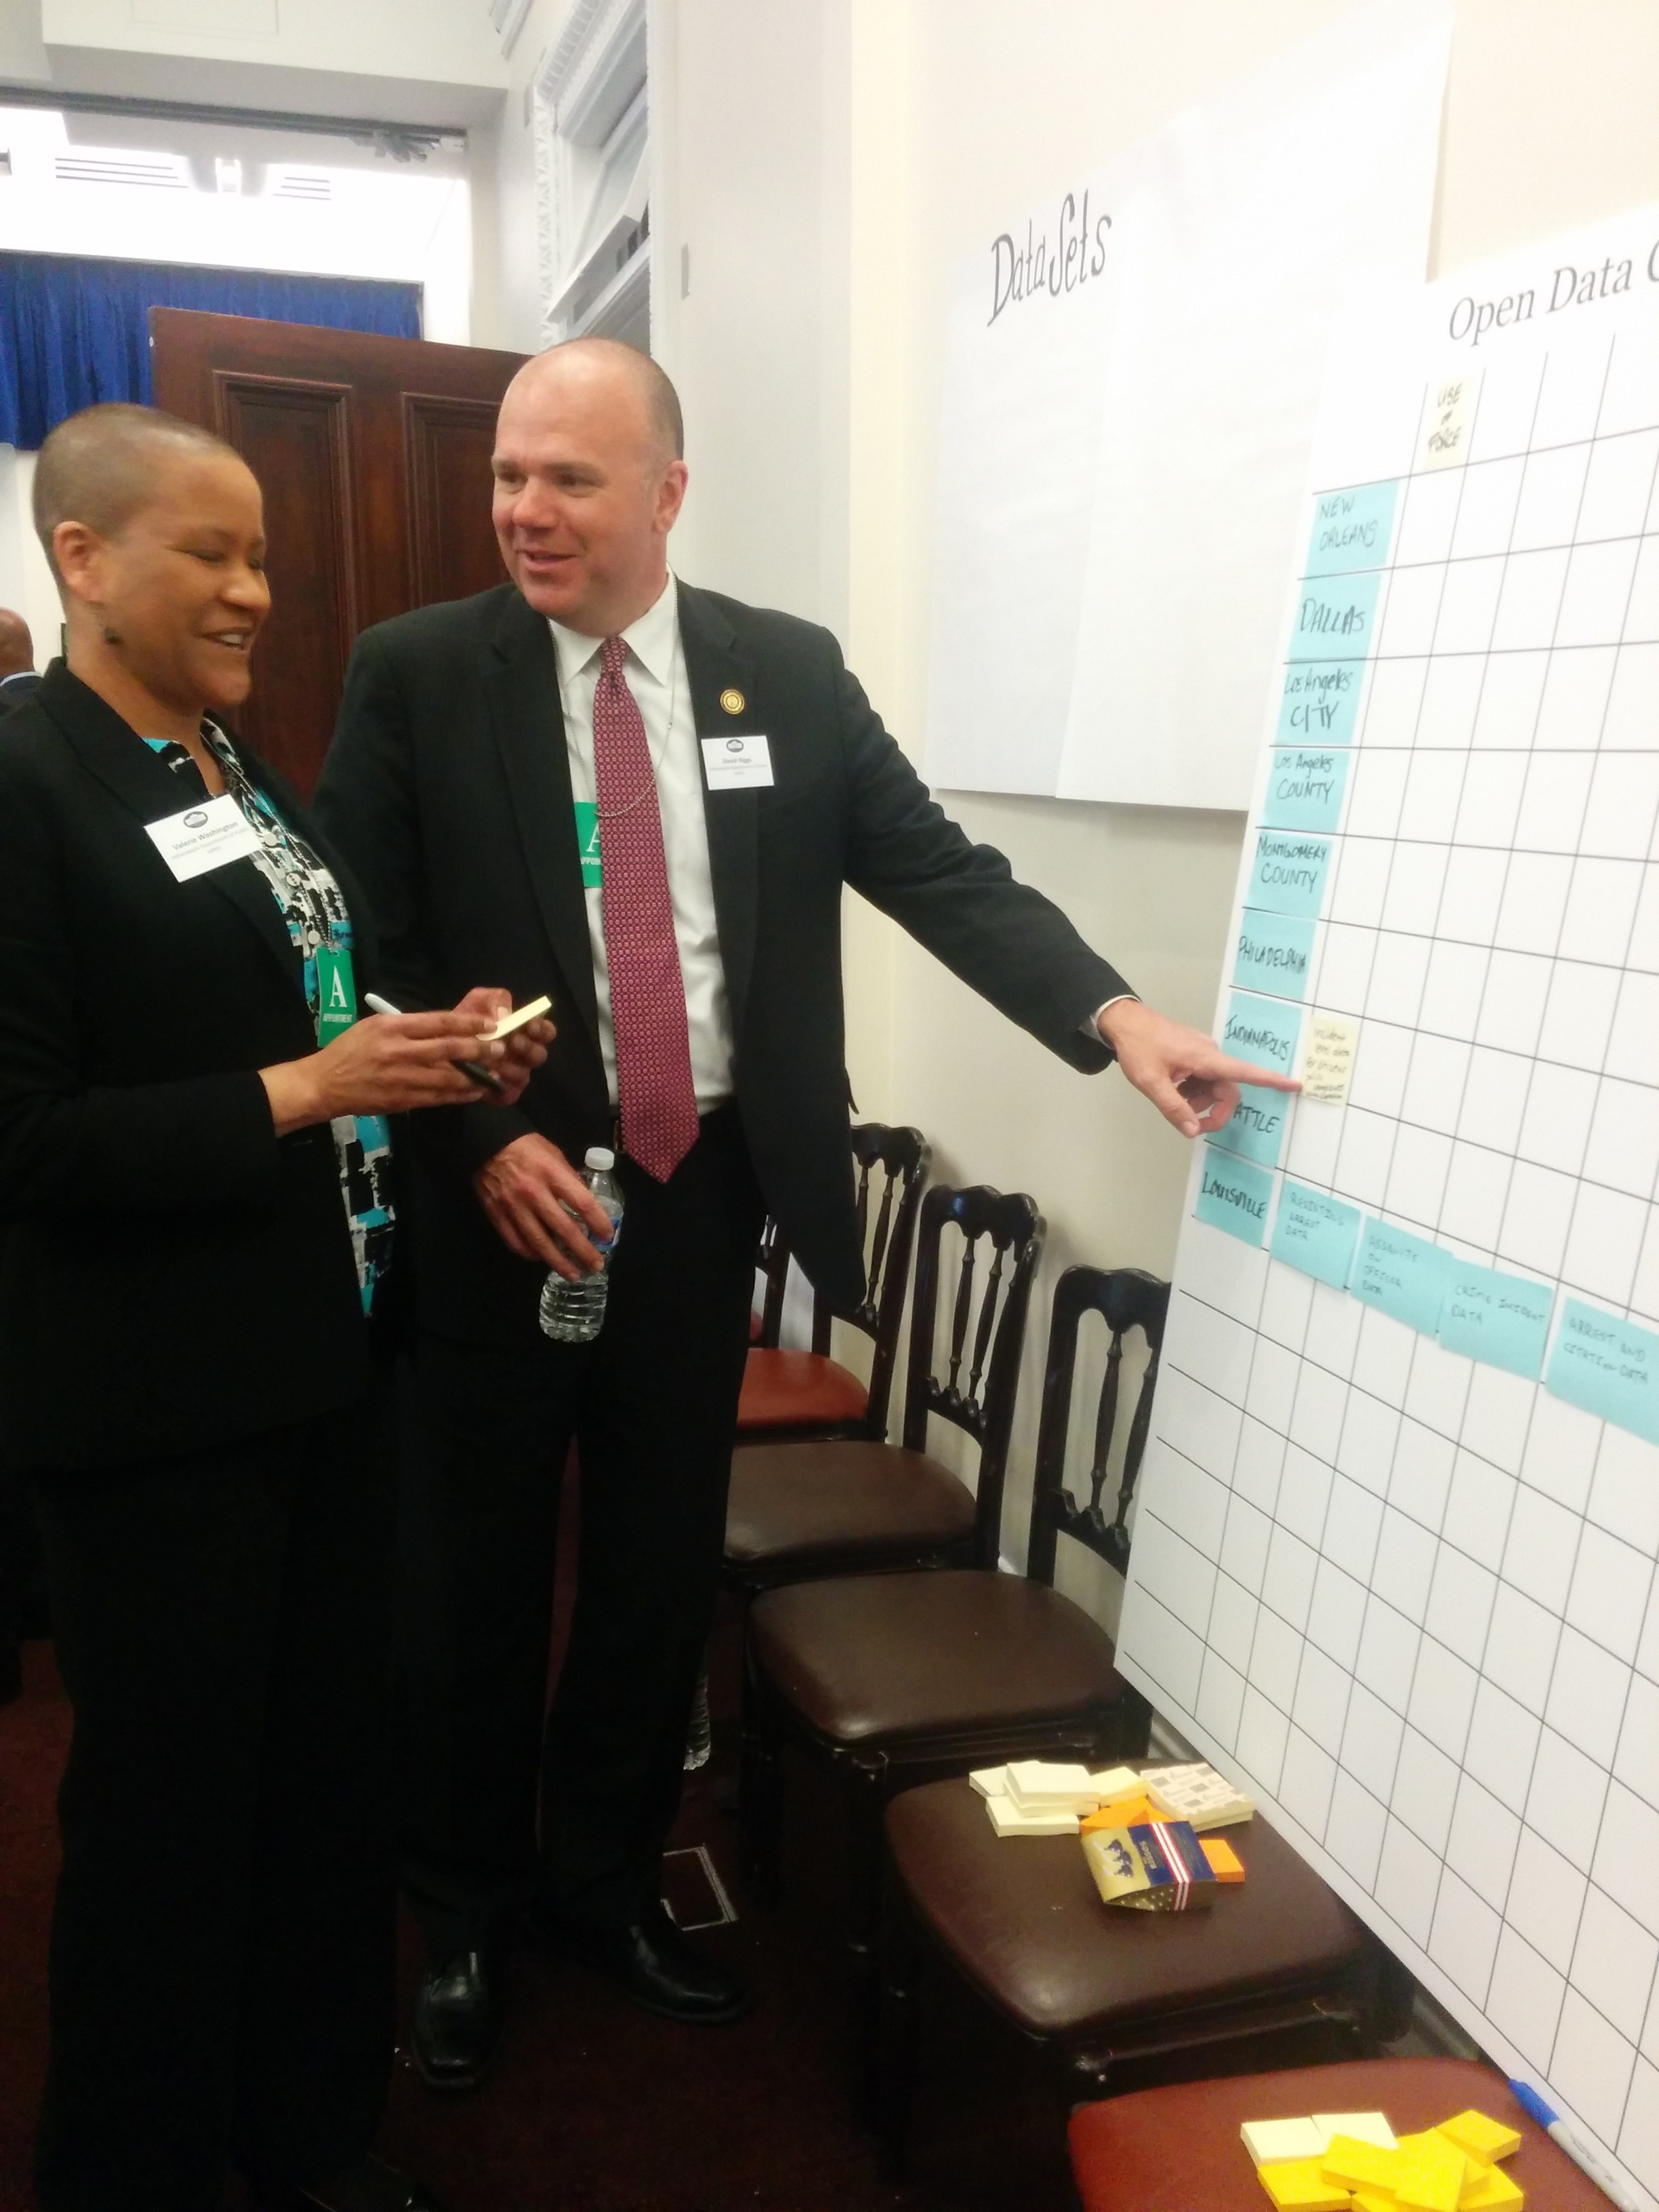 <p>Director of Public Safety Troy Riggs and Deputy Director of Public Safety Valerie Washington commit to opening IMPD datasets at the White House gathering on transparency and accountability.</p>